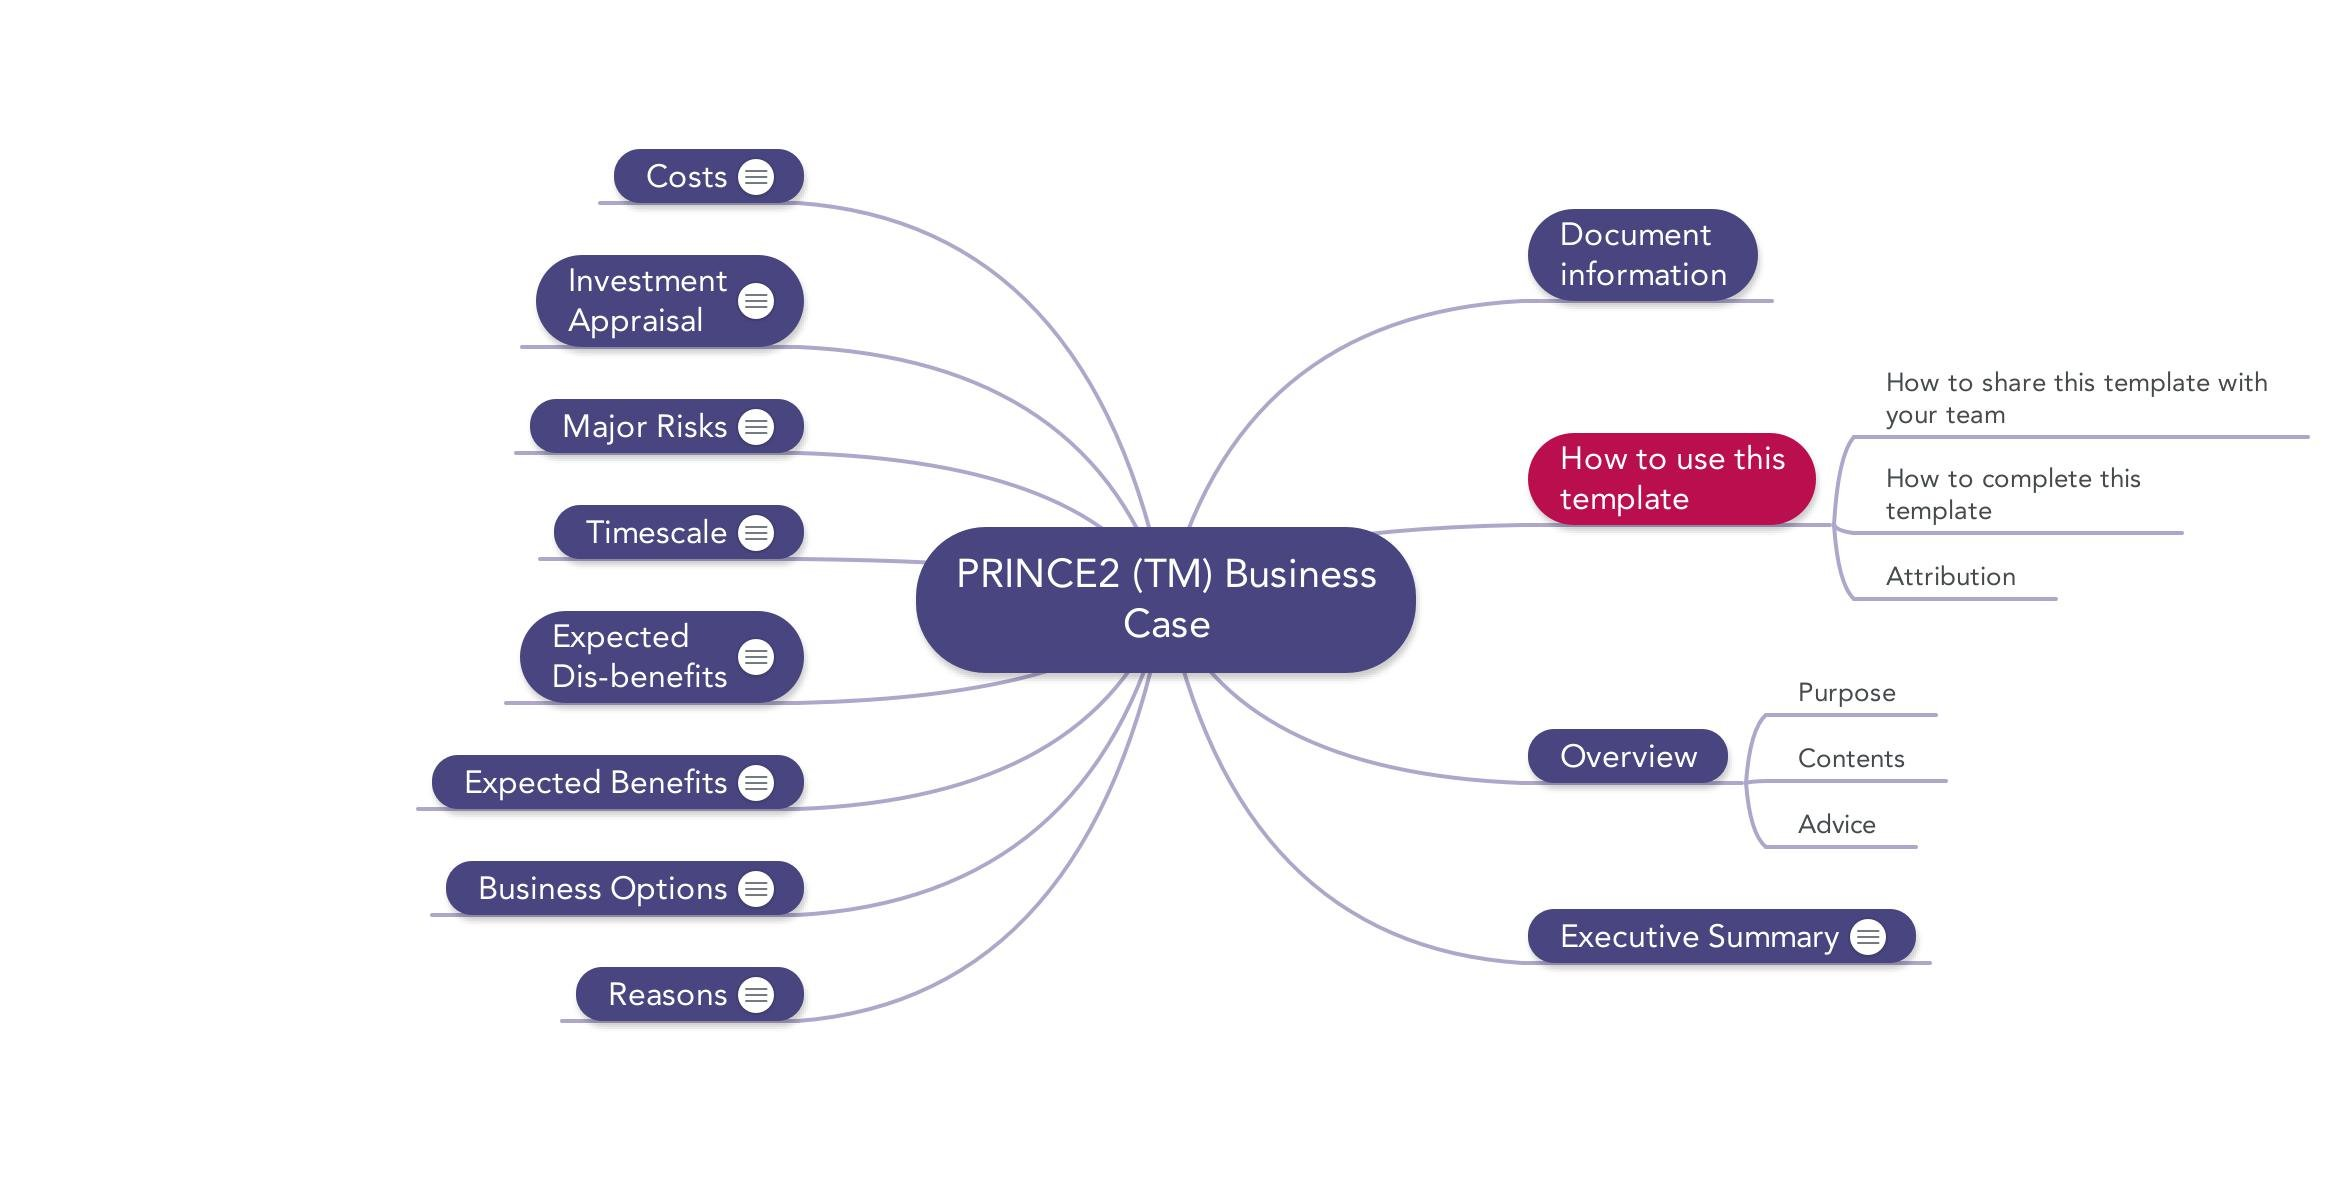 Prince2 business case download template prince2 business case cheaphphosting